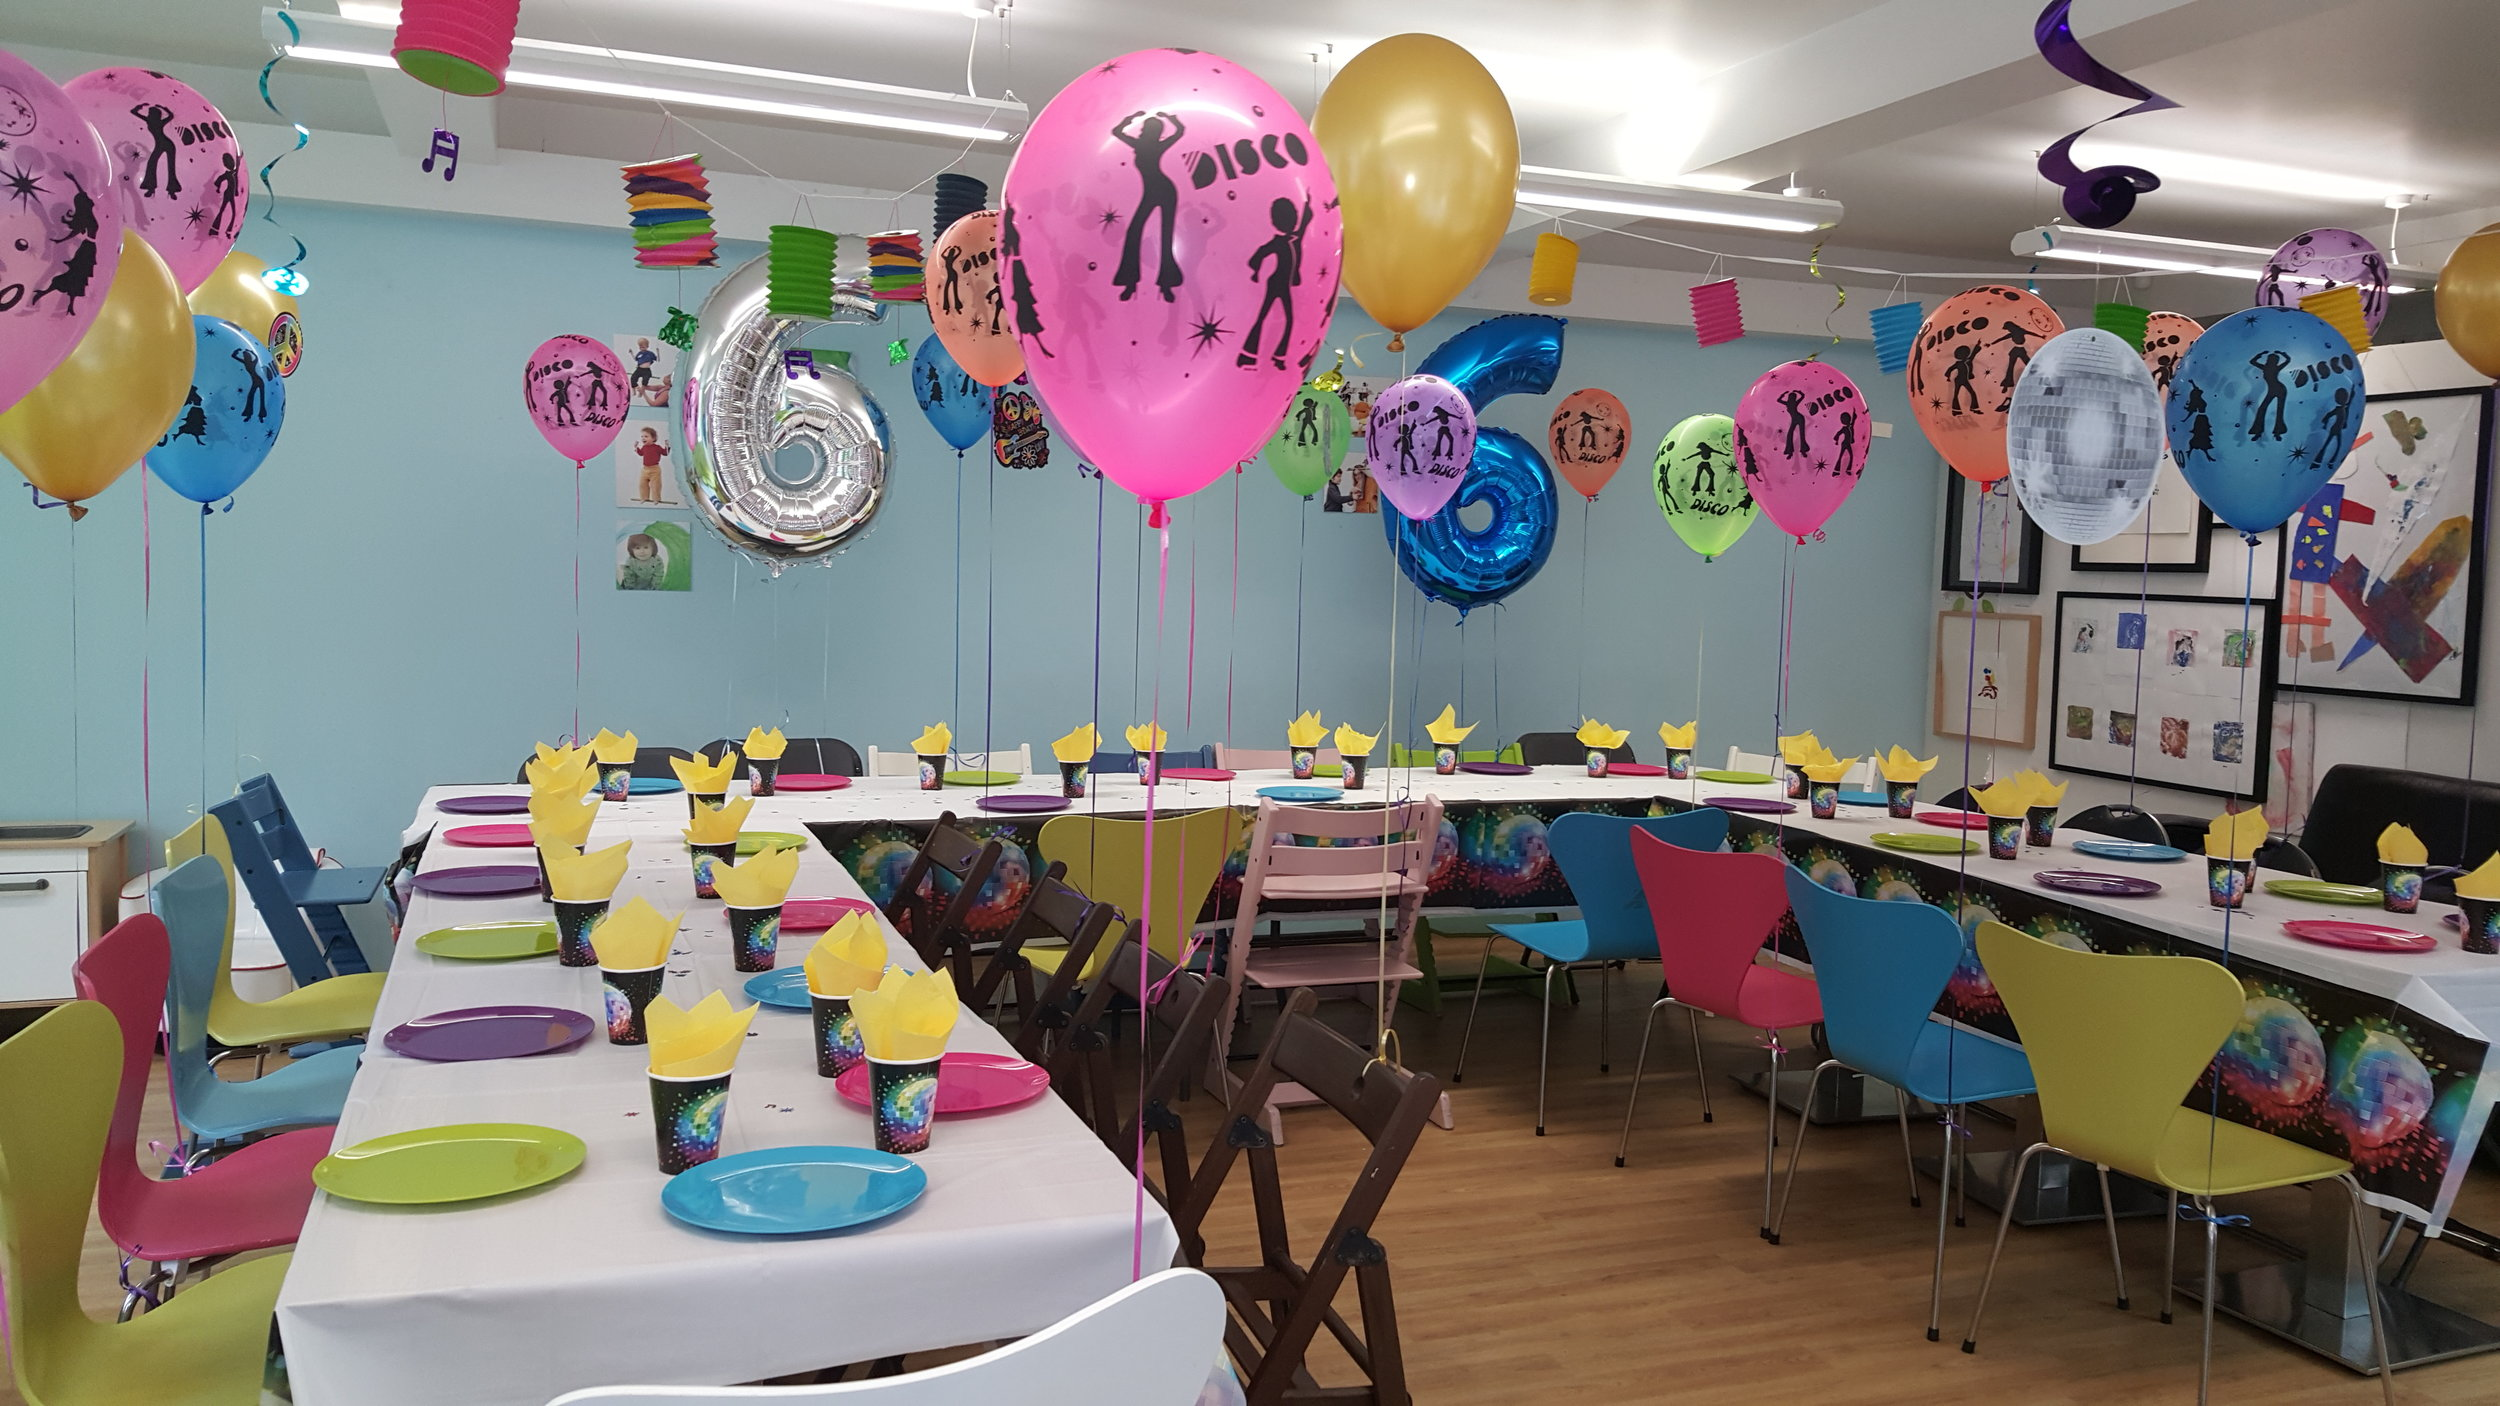 Disco party table for children NW8.jpg